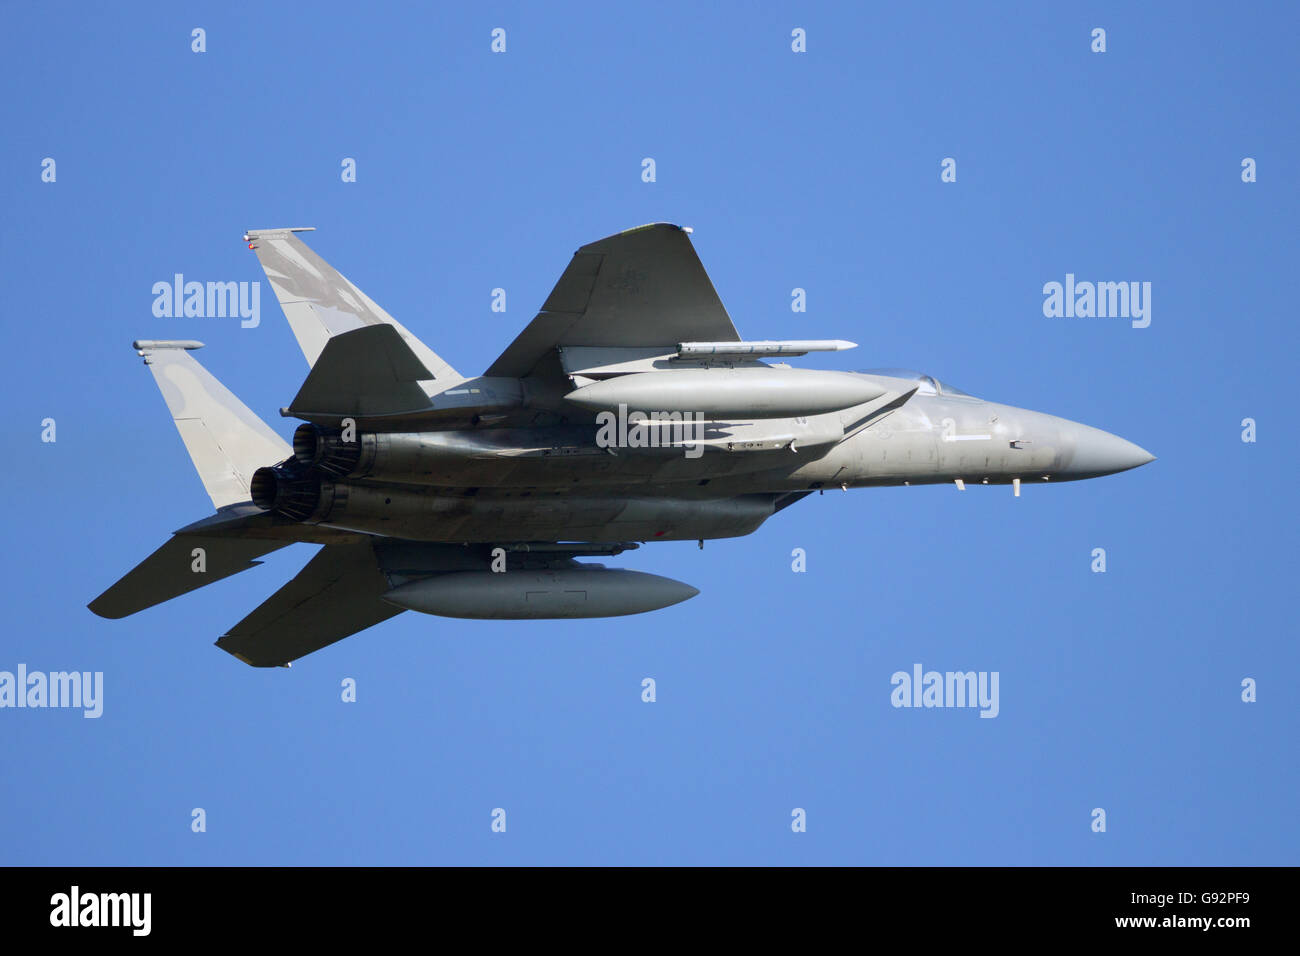 California Air National Guard F-15 take off from Leeuwarden airbase. - Stock Image